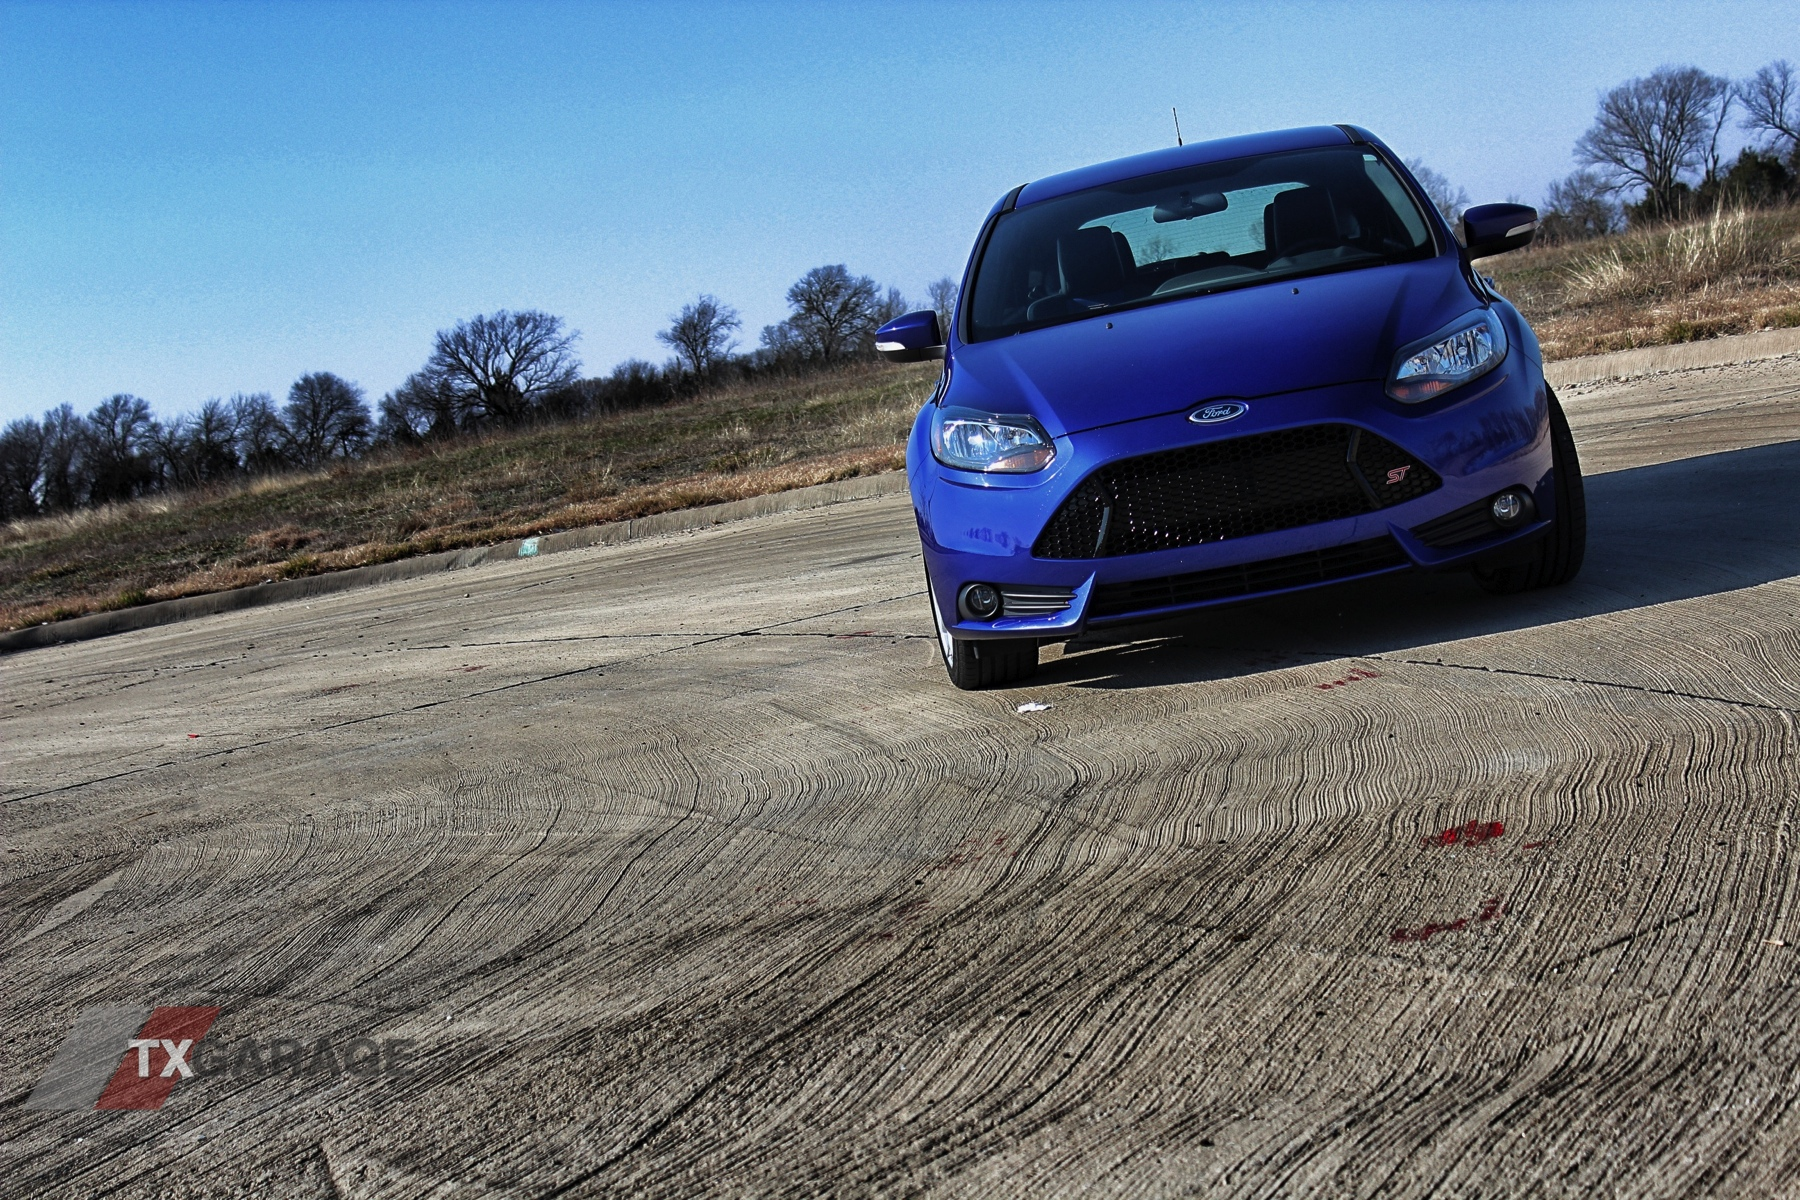 2013 Ford Focus ST Hot Hatch by txGarage